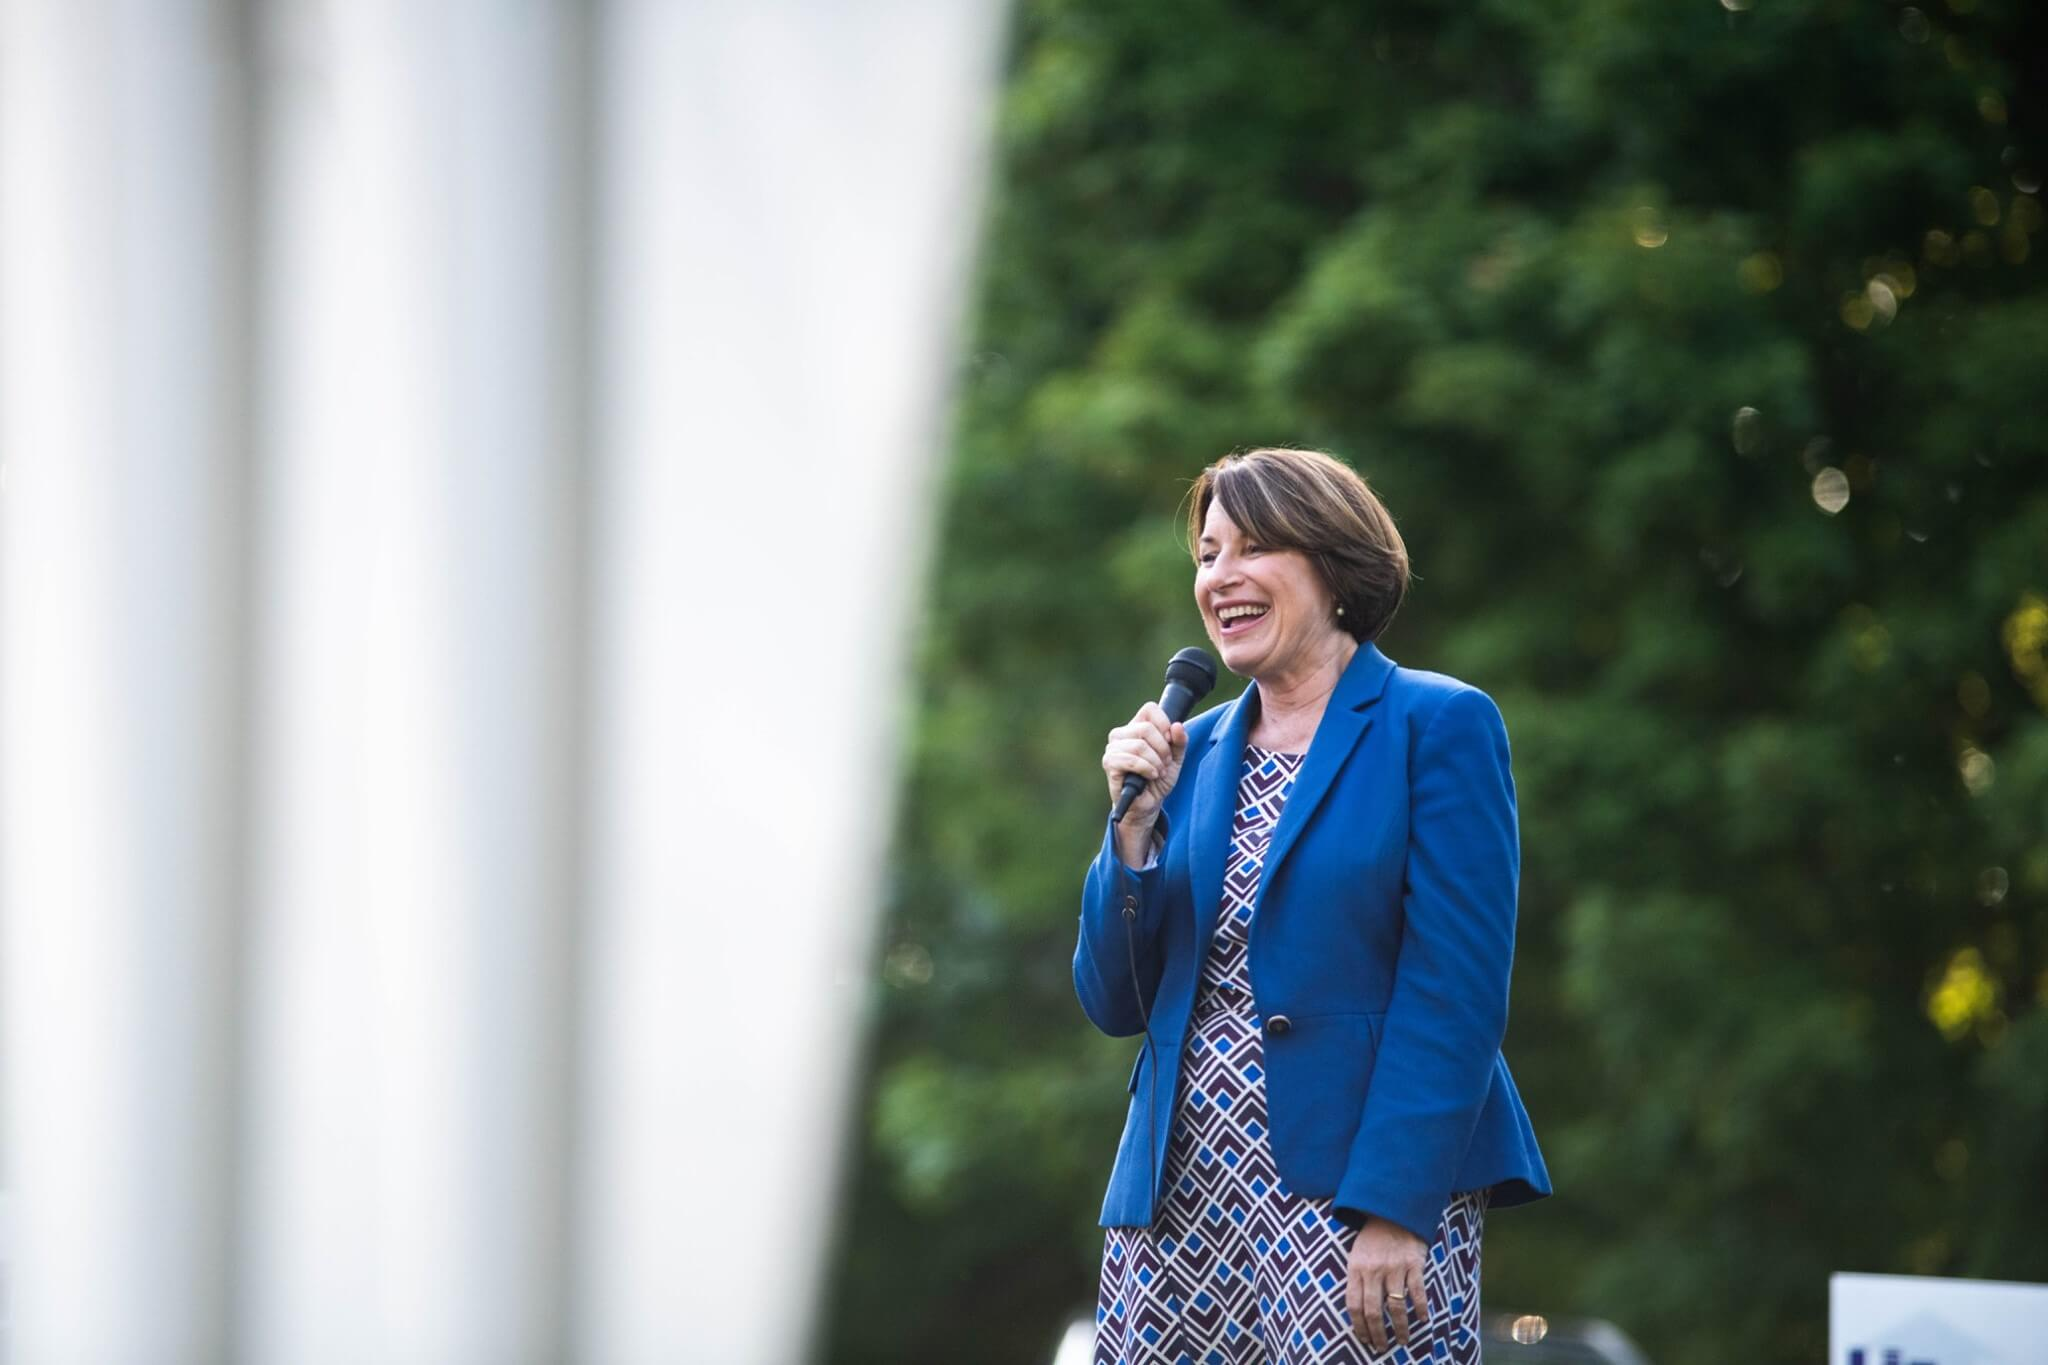 Amy Klobuchar in Iowa in August, from her Facebook page.